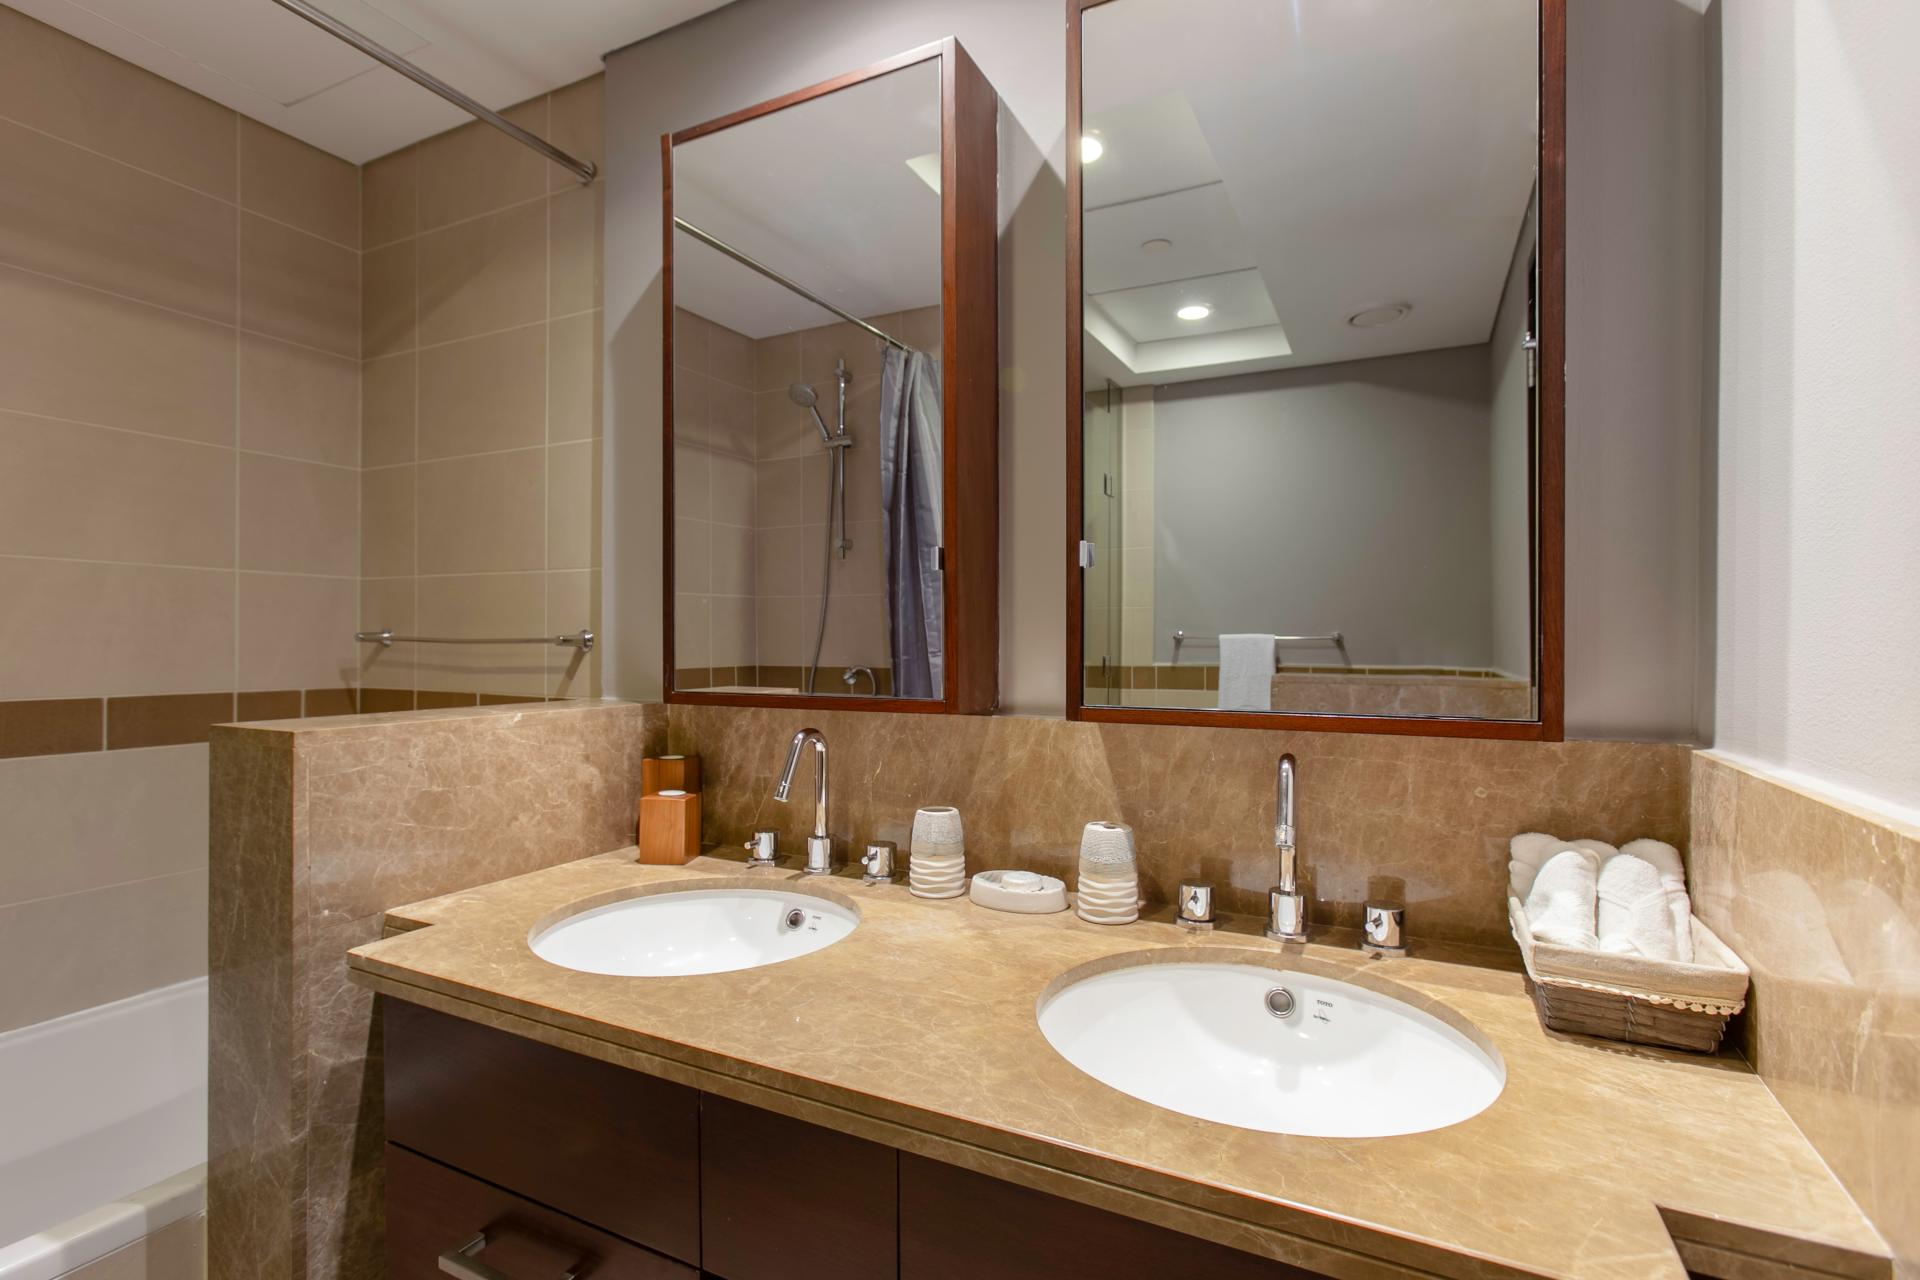 Sinks at DIFC Index Tower Apartment